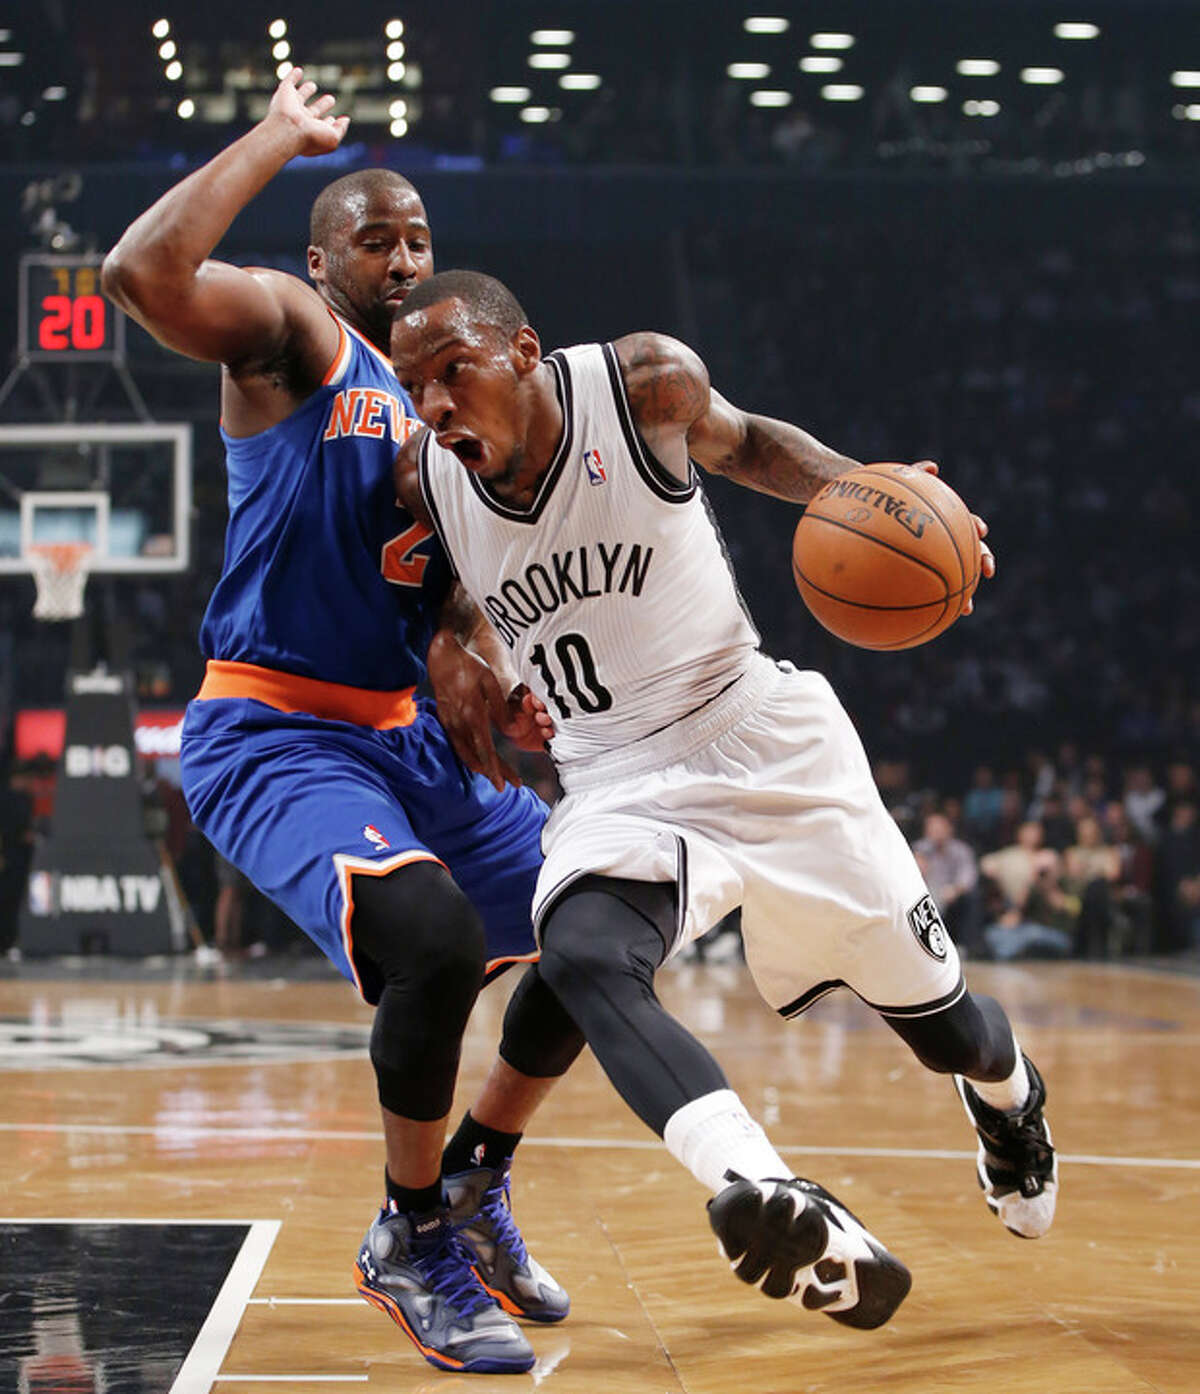 Brooklyn Nets guard Tyshawn Taylor (10) drives past New York Knicks guard Raymond Felton (2) in the first half of their NBA basketball game at the Barclays Center, Thursday, Dec. 5, 2013, in New York. (AP Photo/Kathy Willens)